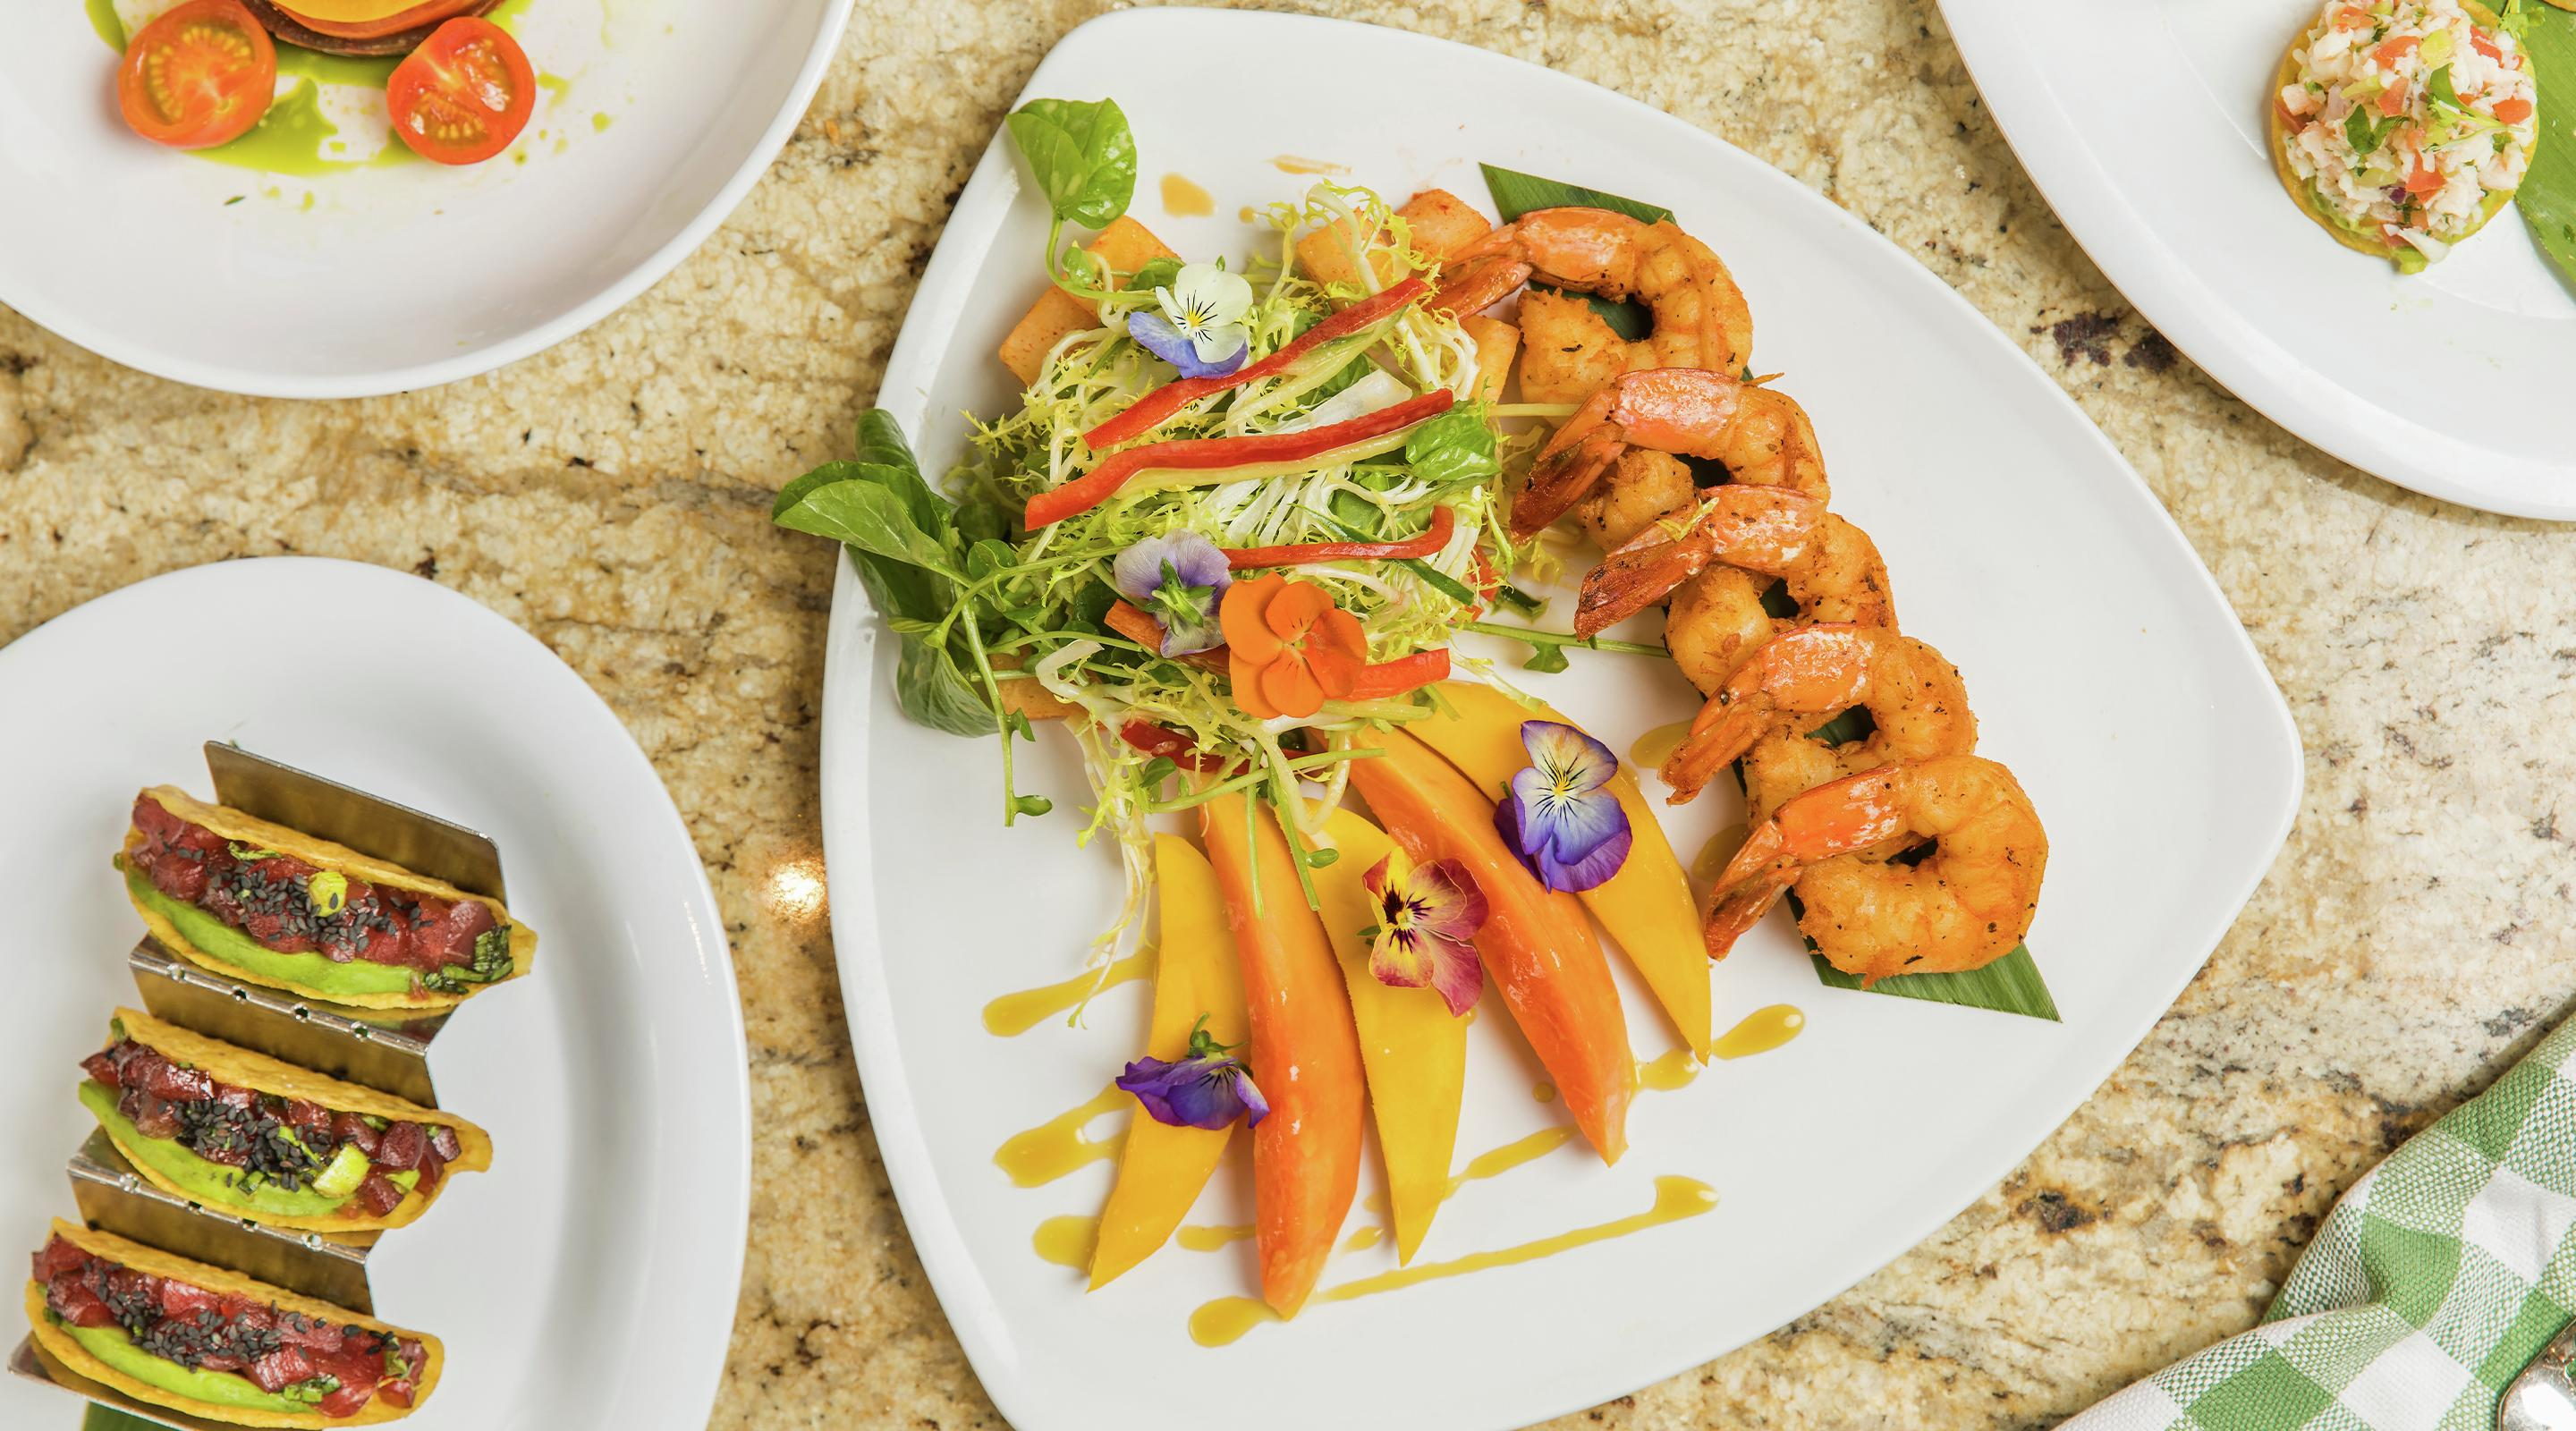 Enjoy the Shrimp Papaya Salad for the perfect combination of sweet and spicy.